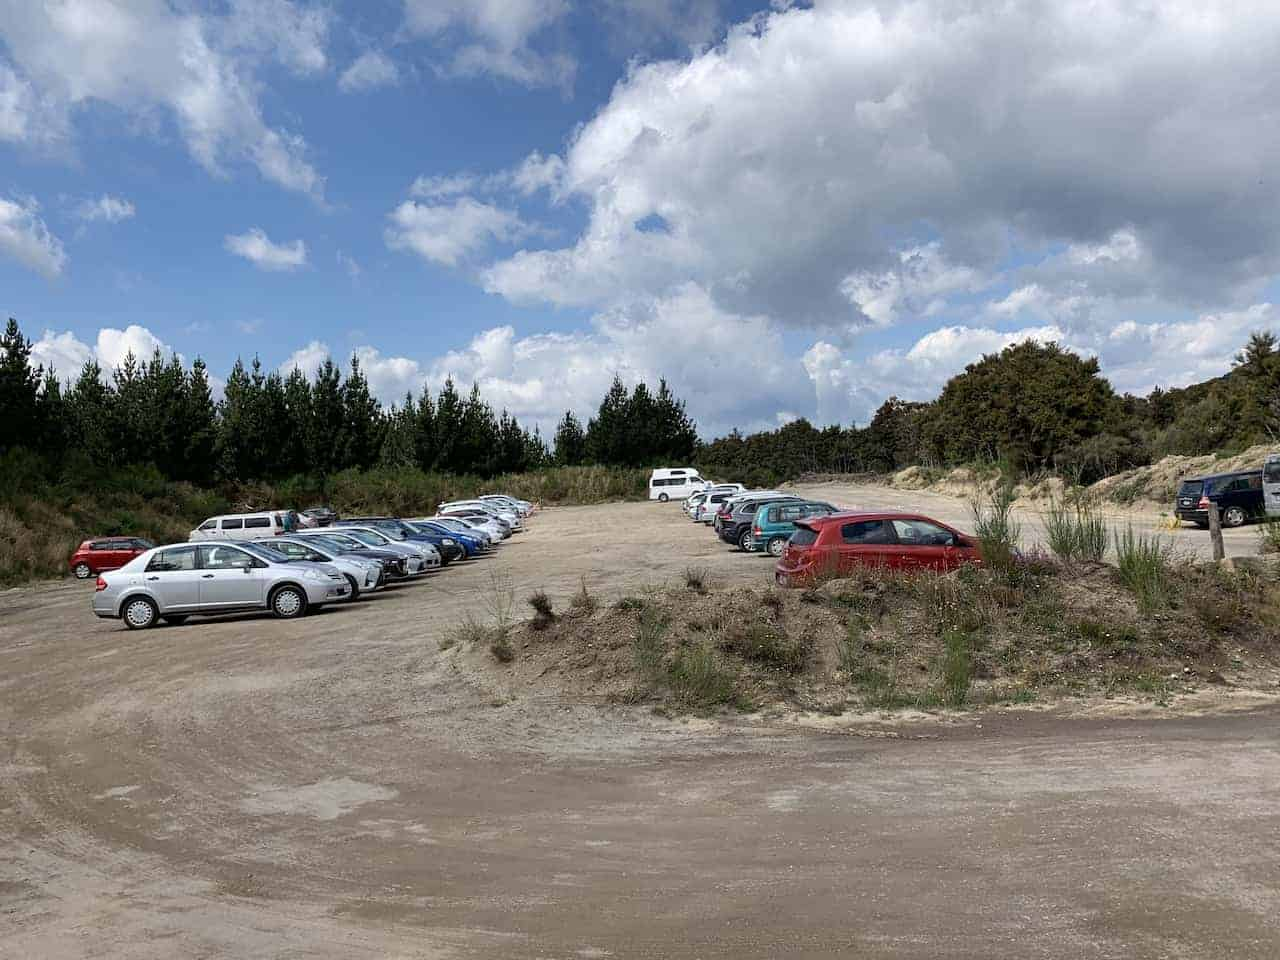 Ketetahi Parking Lot